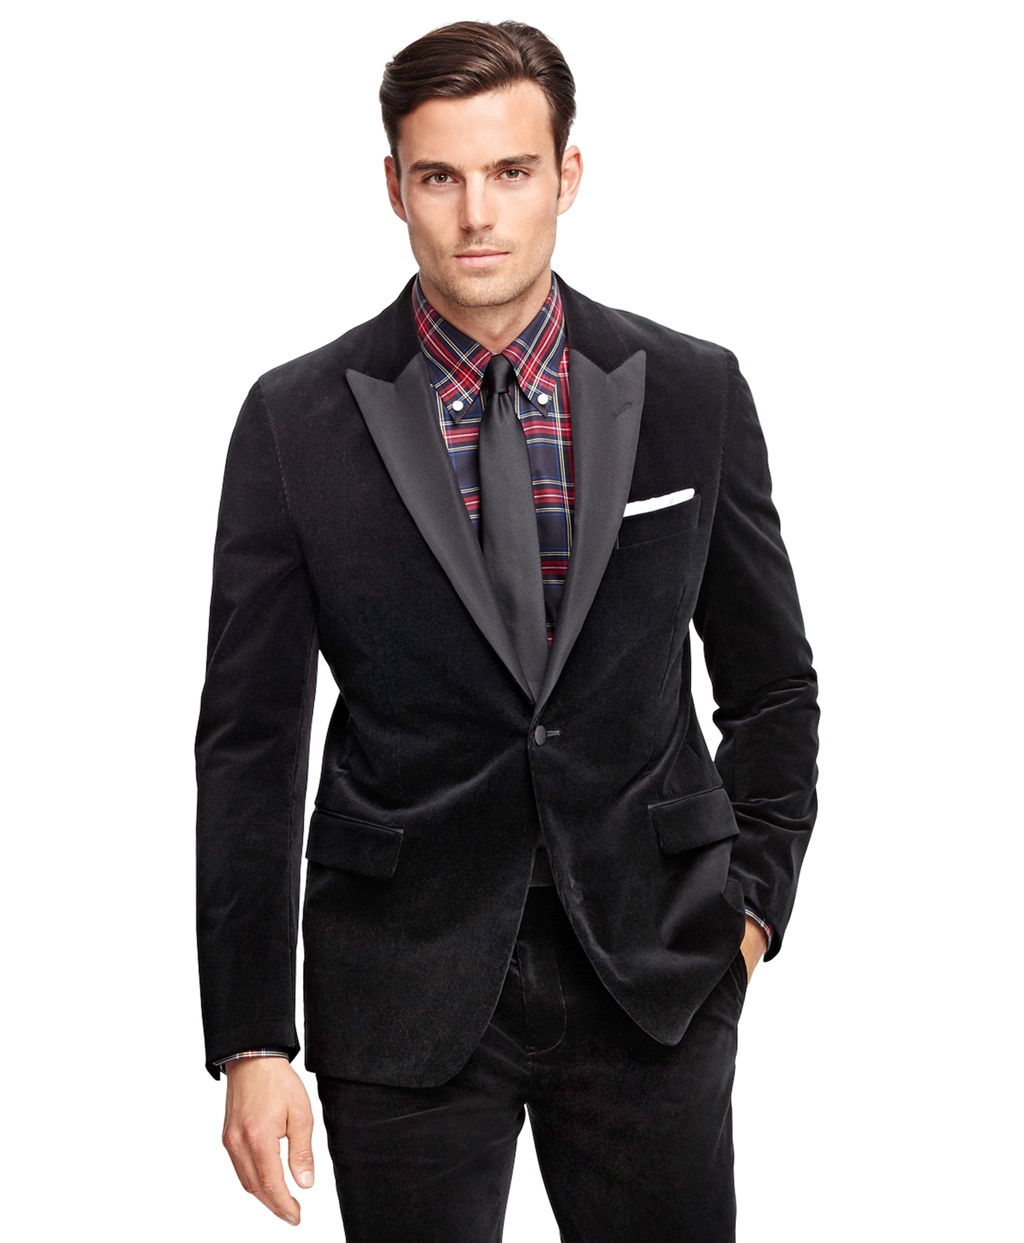 Men's Vintage Style Suits, Classic Suits Brooks Brothers Mens Fitzgerald Fit Corduroy Tuxedo $798.00 AT vintagedancer.com